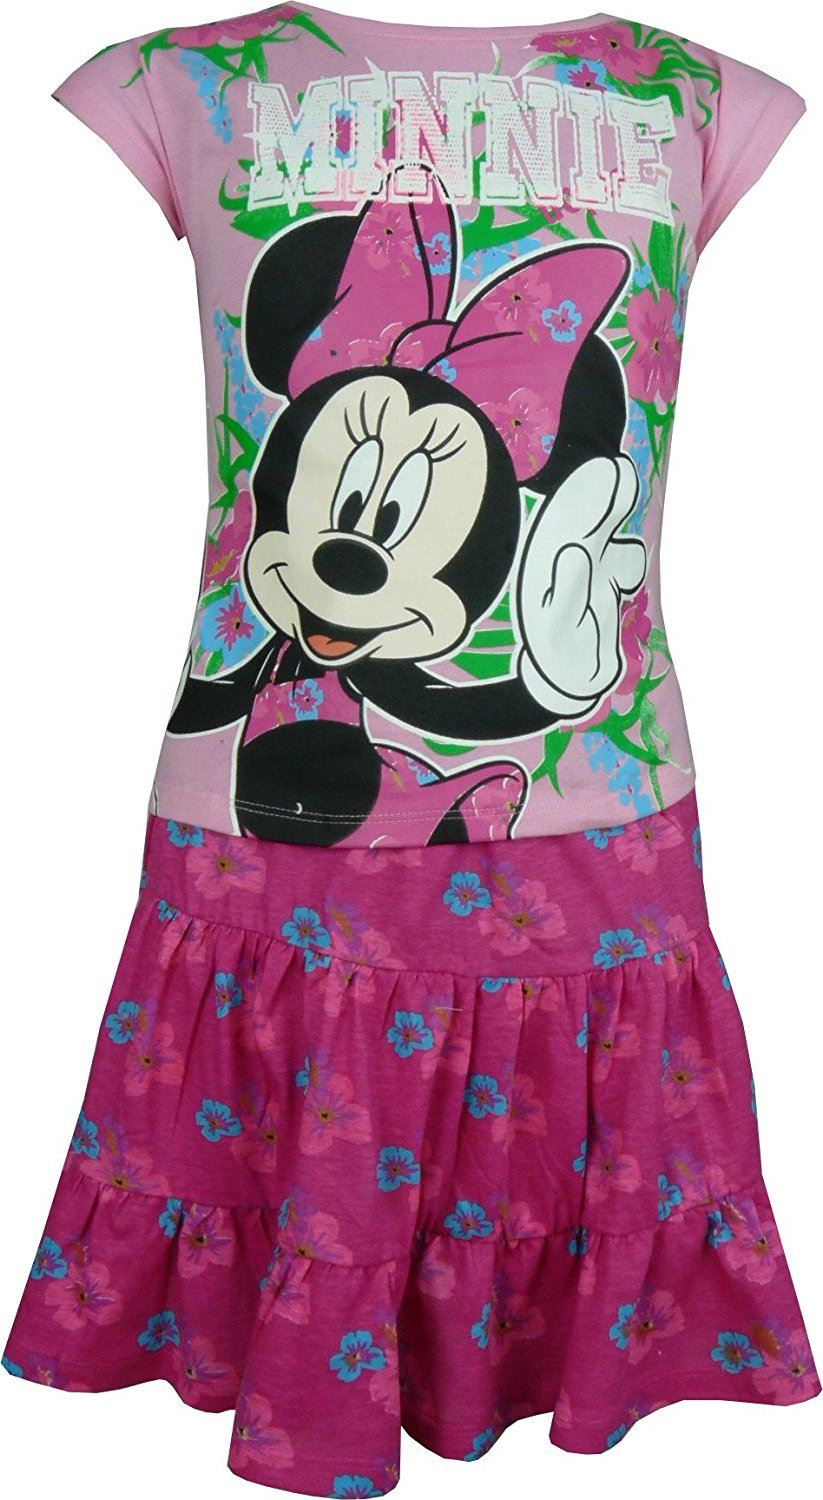 Fille-Disney-Minnie-Mouse-Ensemble-d-039-ete-T-shirt-Top-amp-Jupe-Taille-3-8-ans